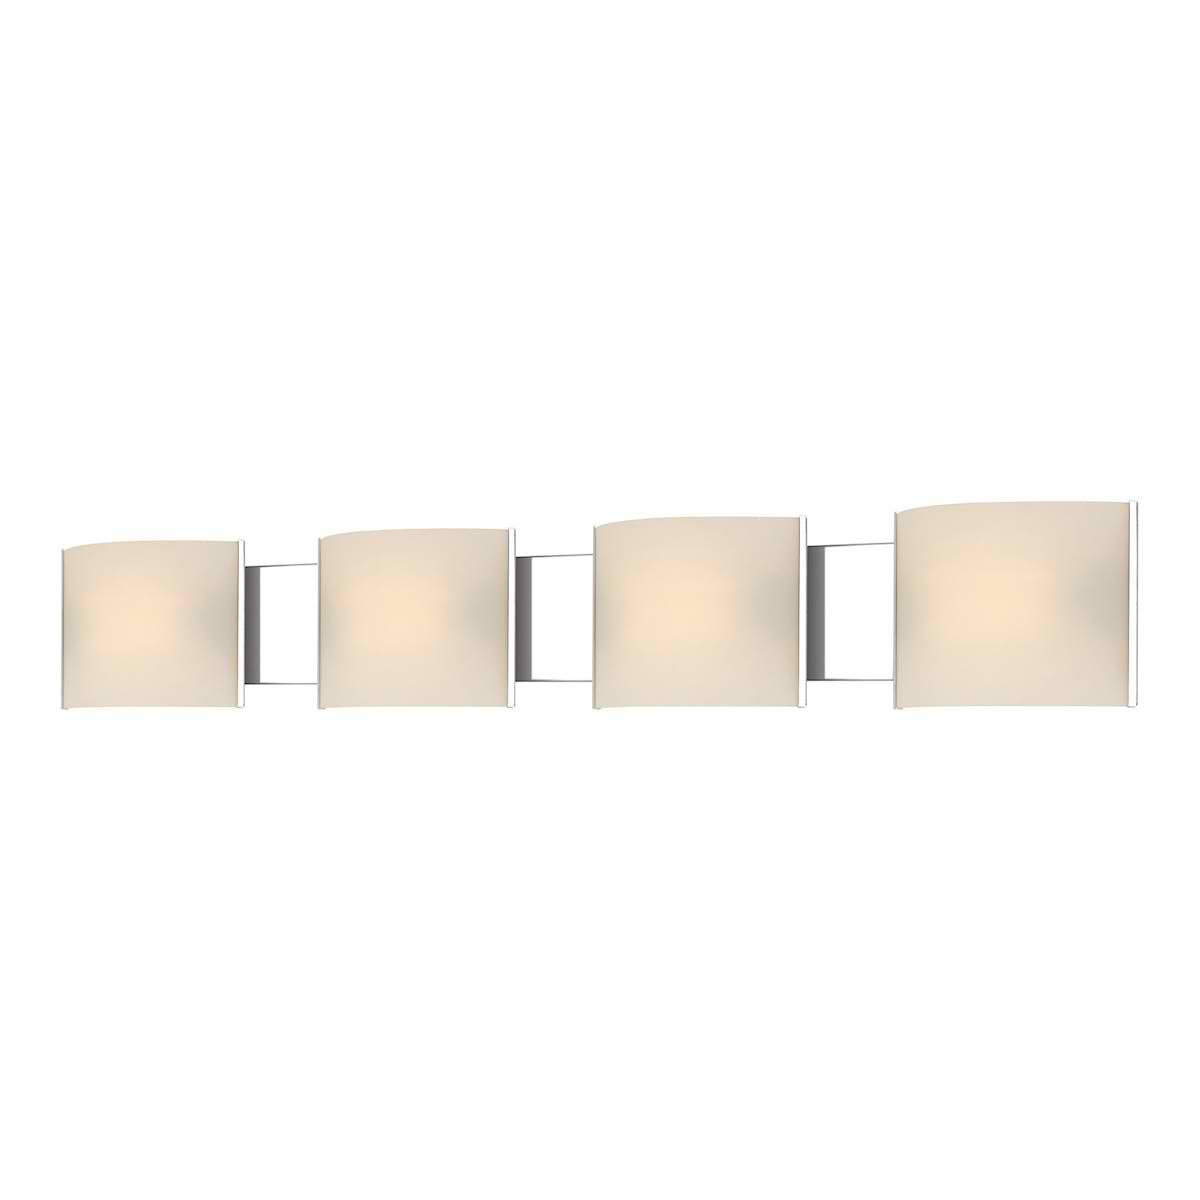 Pannelli Vanity - 4 Light with Lamps. White Opal Glass / Chrome Finish